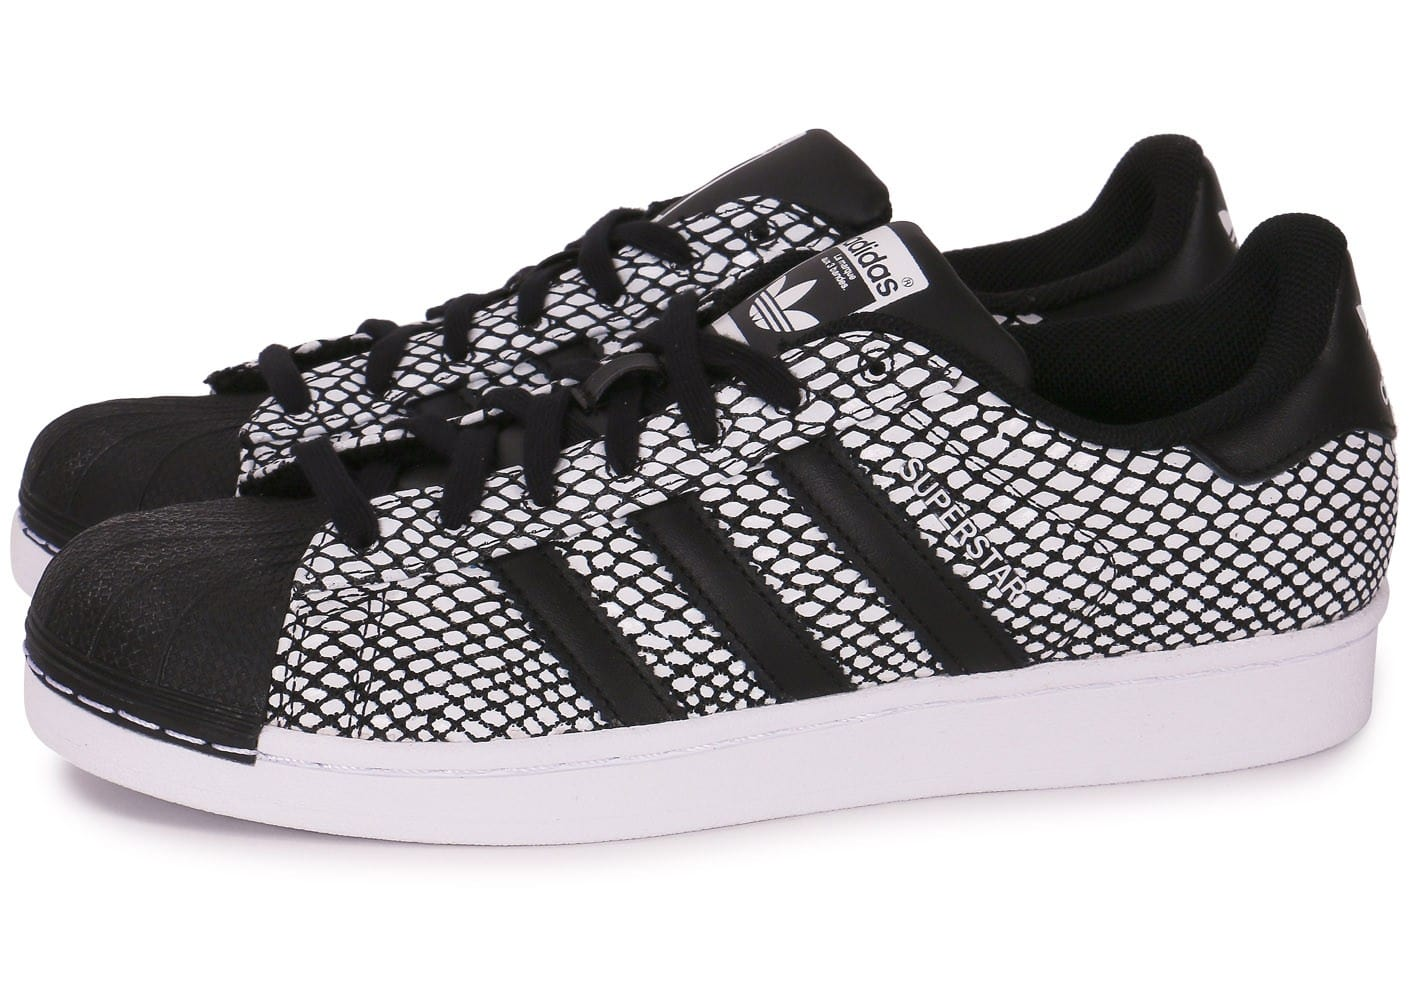 adidas superstar snake noire chaussures homme chausport. Black Bedroom Furniture Sets. Home Design Ideas